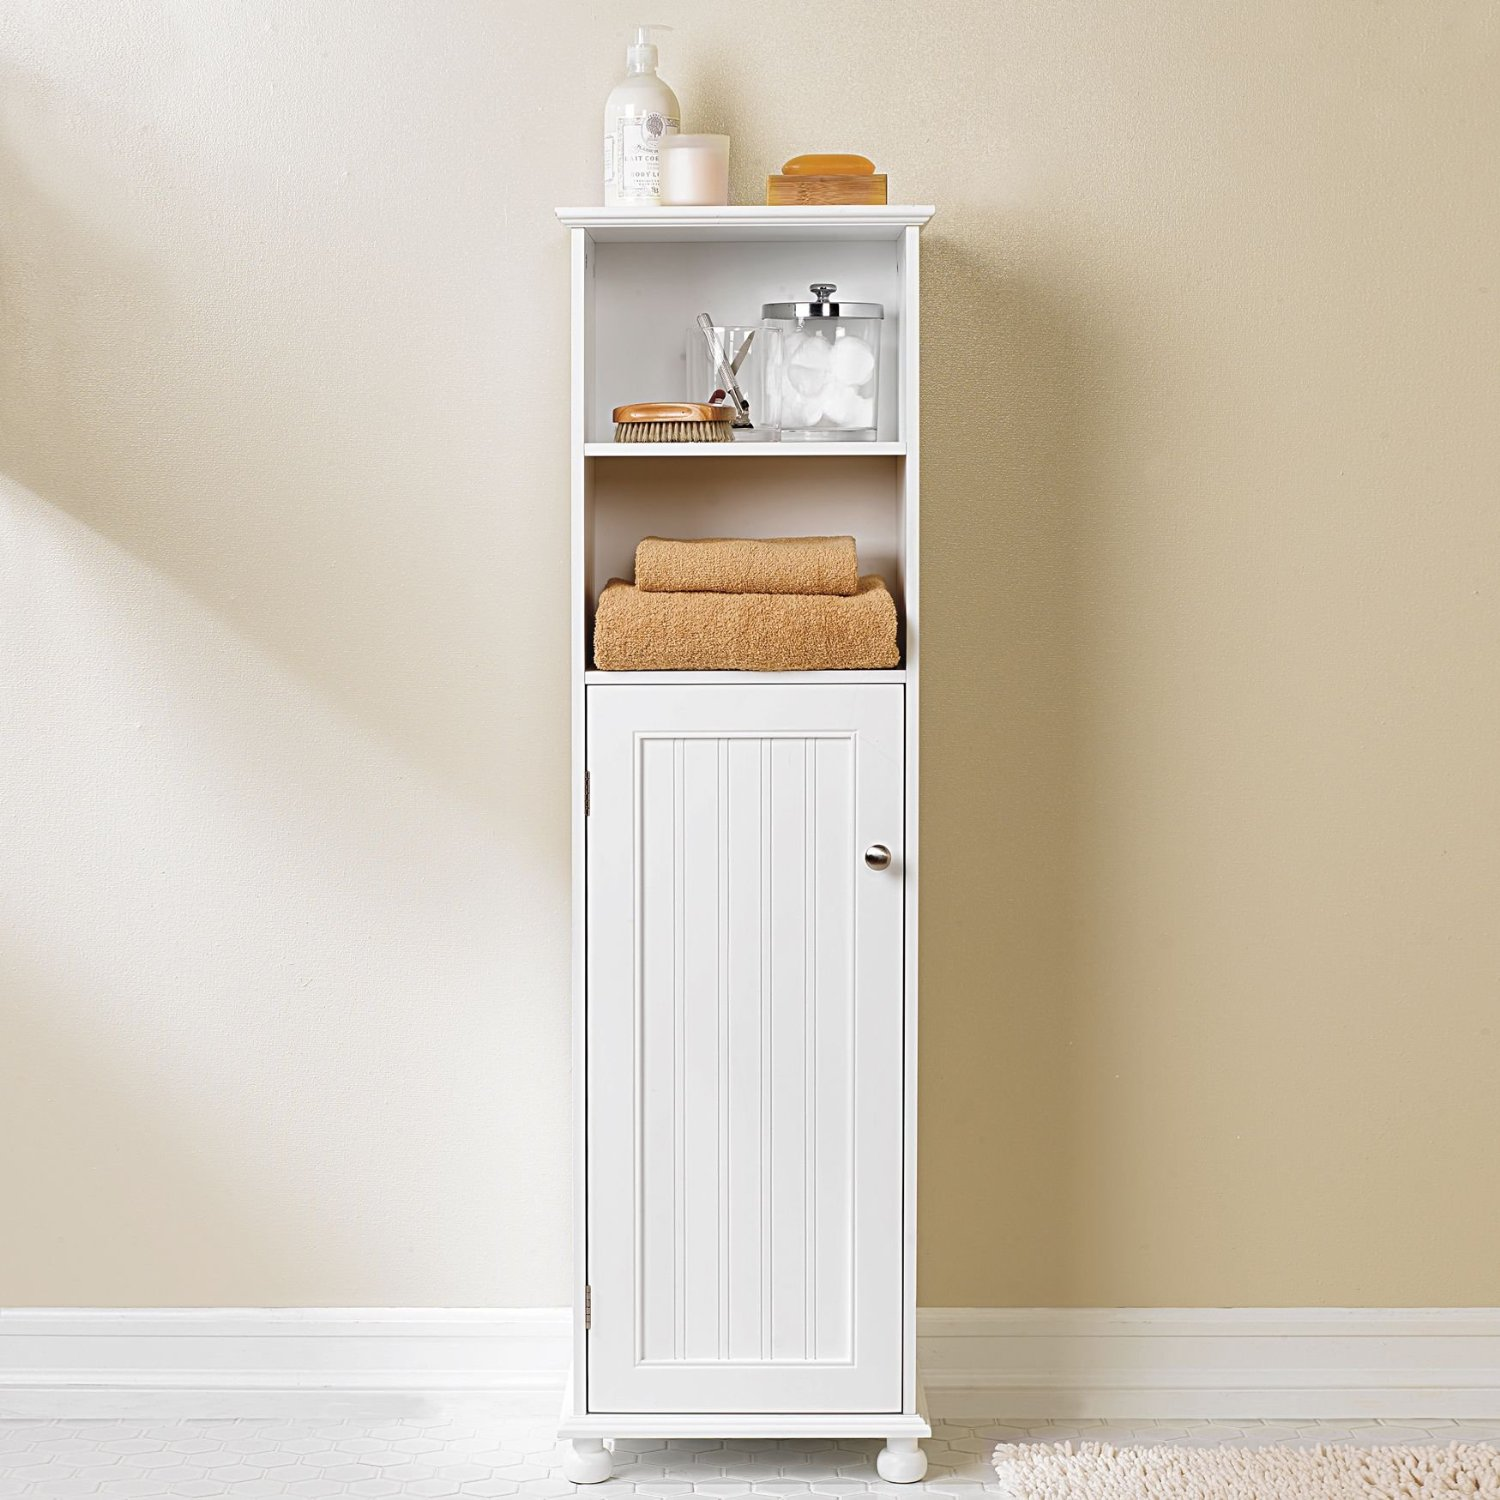 Modular small bathroom storage cabinet bathroom storage cabinets content which is listed within storage rdsxoci